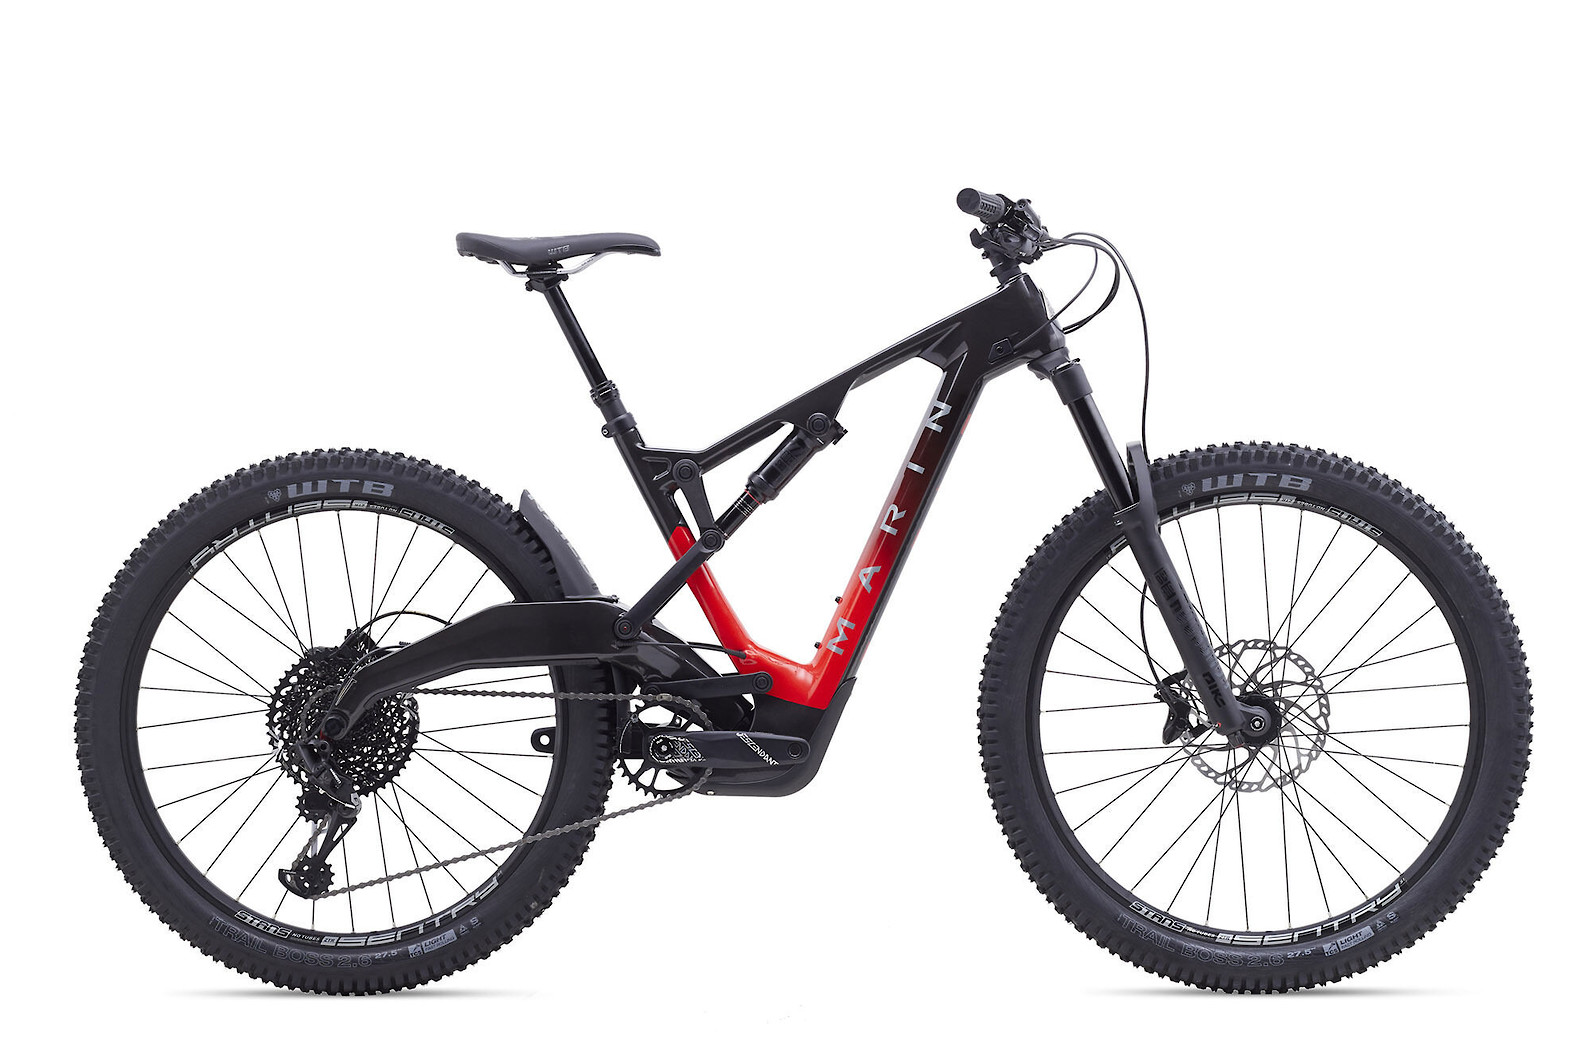 2019 Marin Mount Vision 8